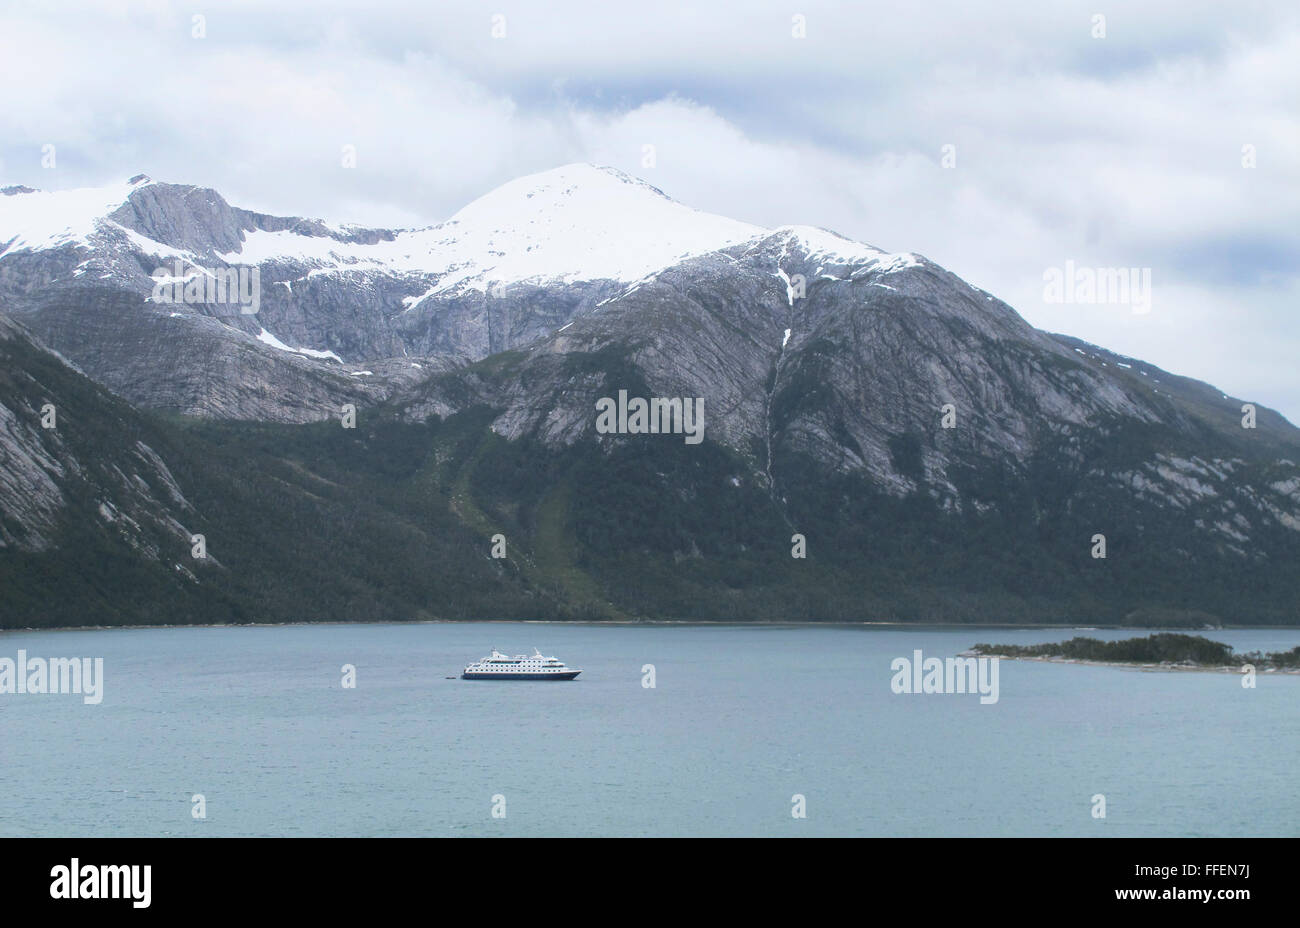 Patagonian landscape with lake and a cruise ship. Horizontal - Stock Image